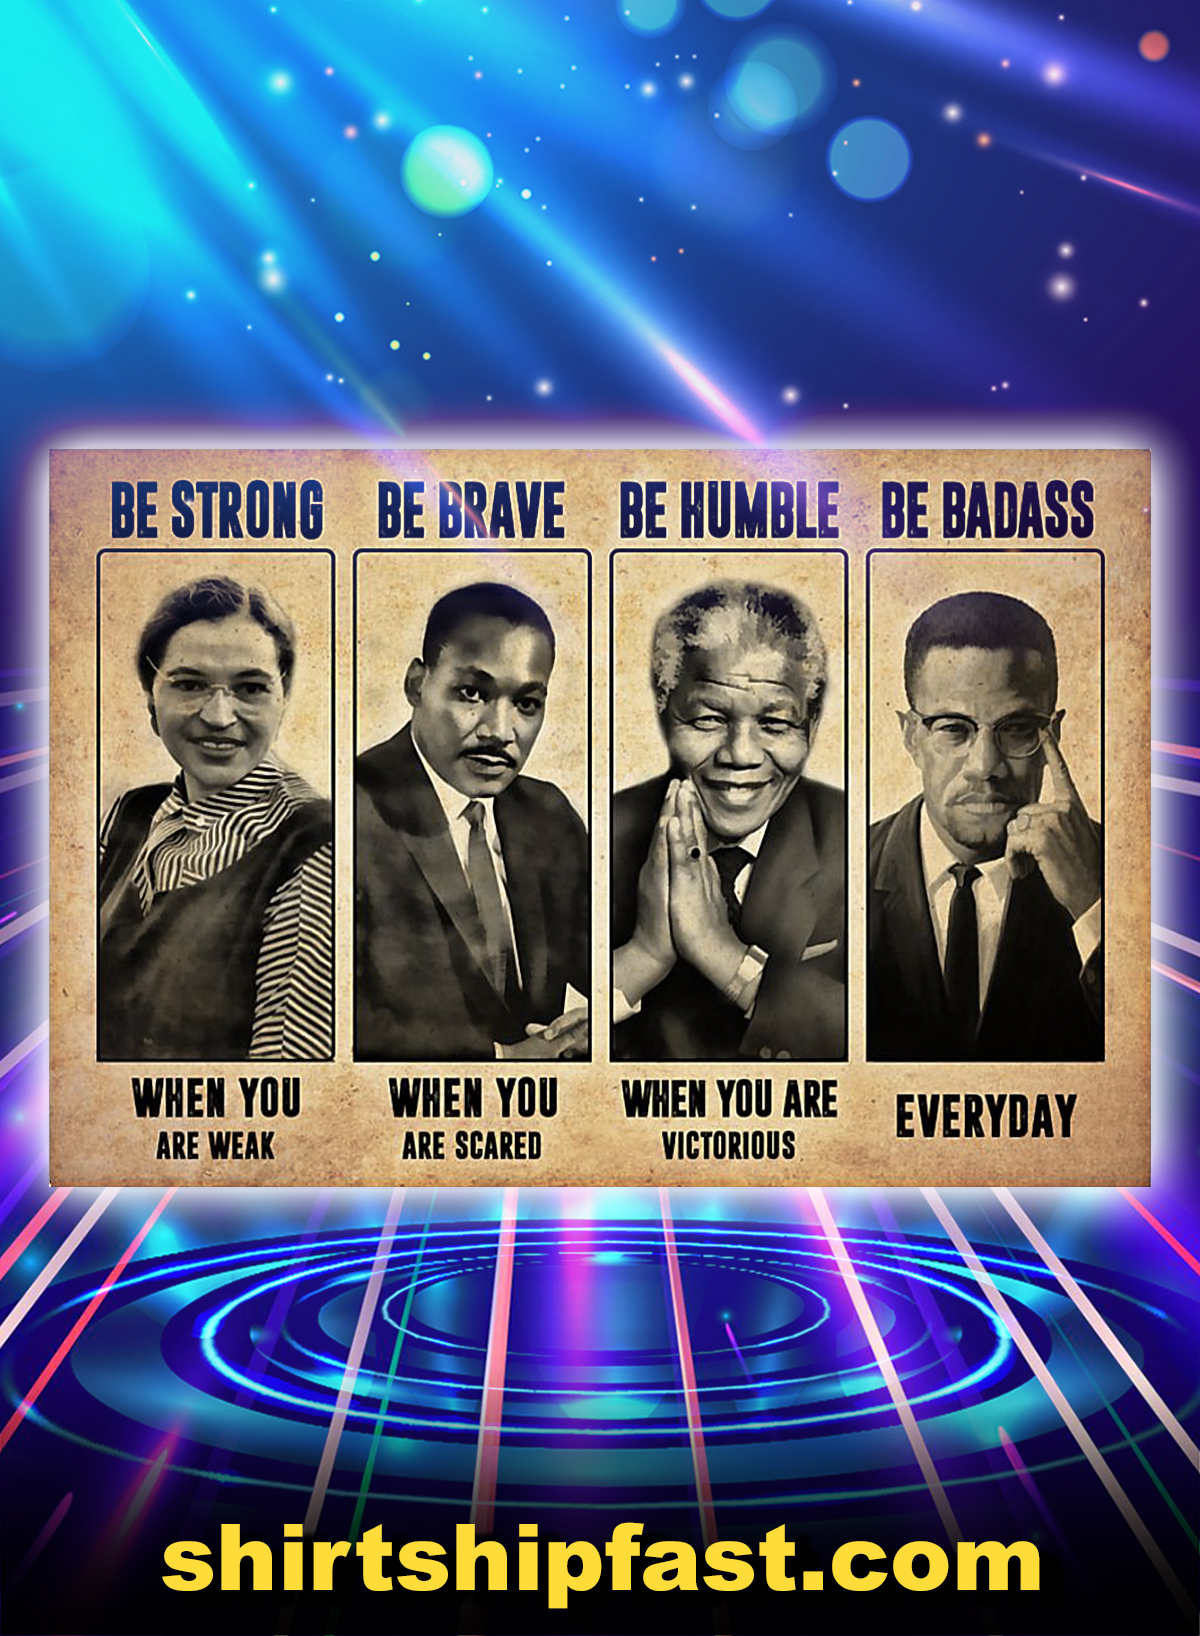 Rosa Parks Martin Luther King Malcolm Nelson Mandela famous people be strong poster - A4